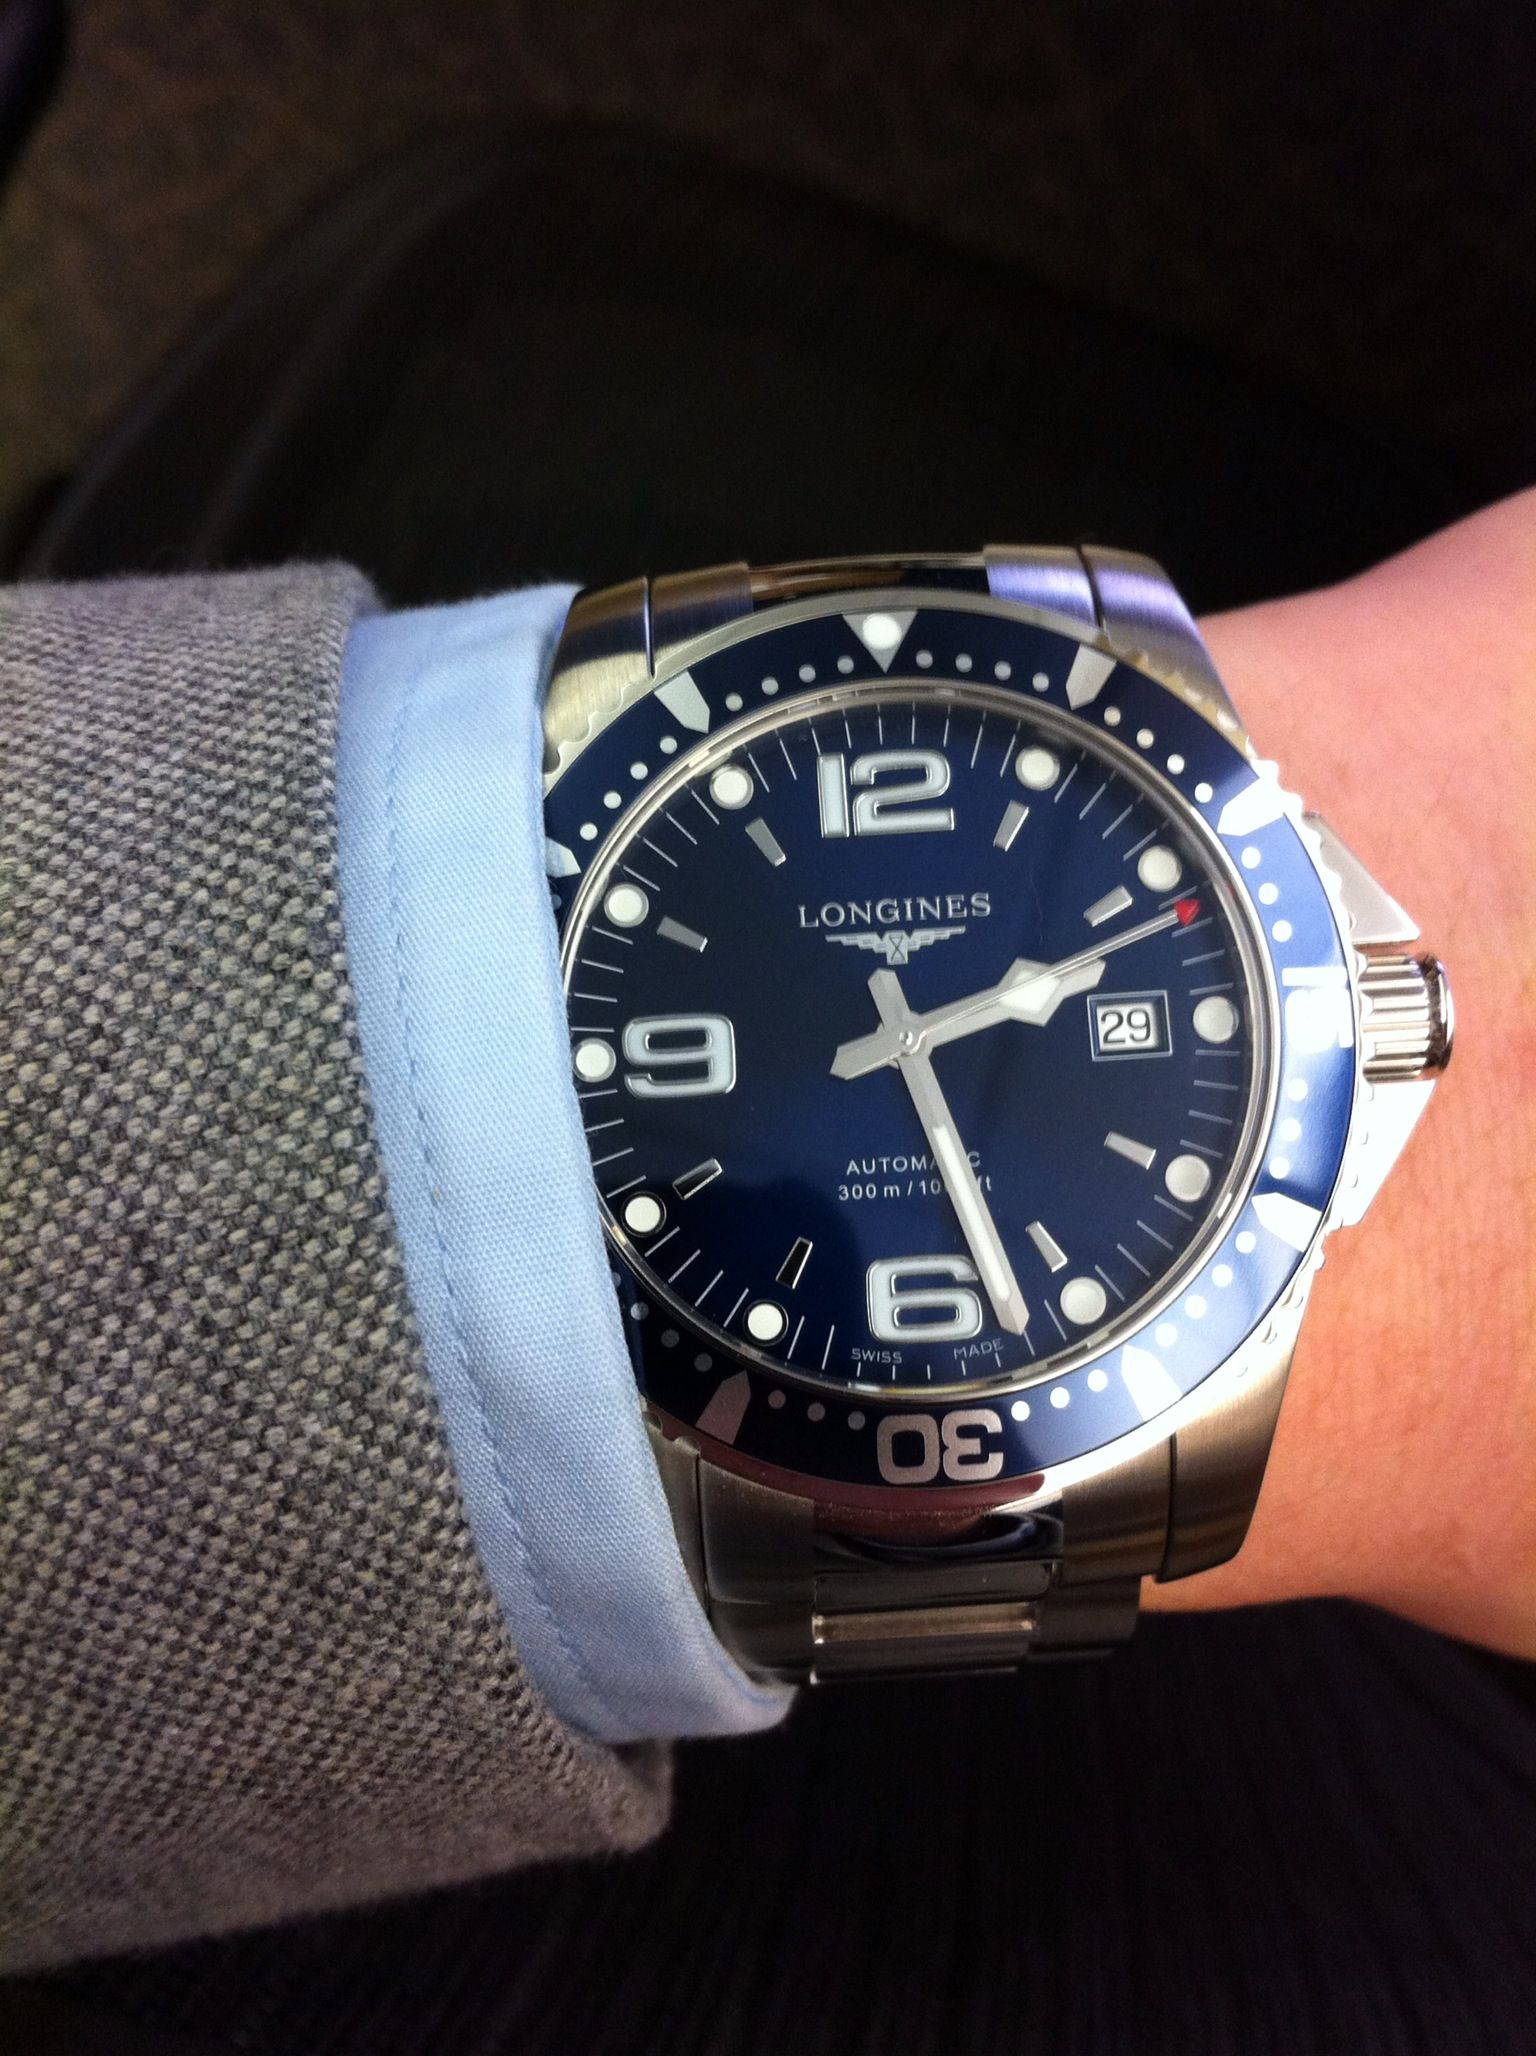 Longines Hydroconquest Perfect Blue Gents 101 In 2019